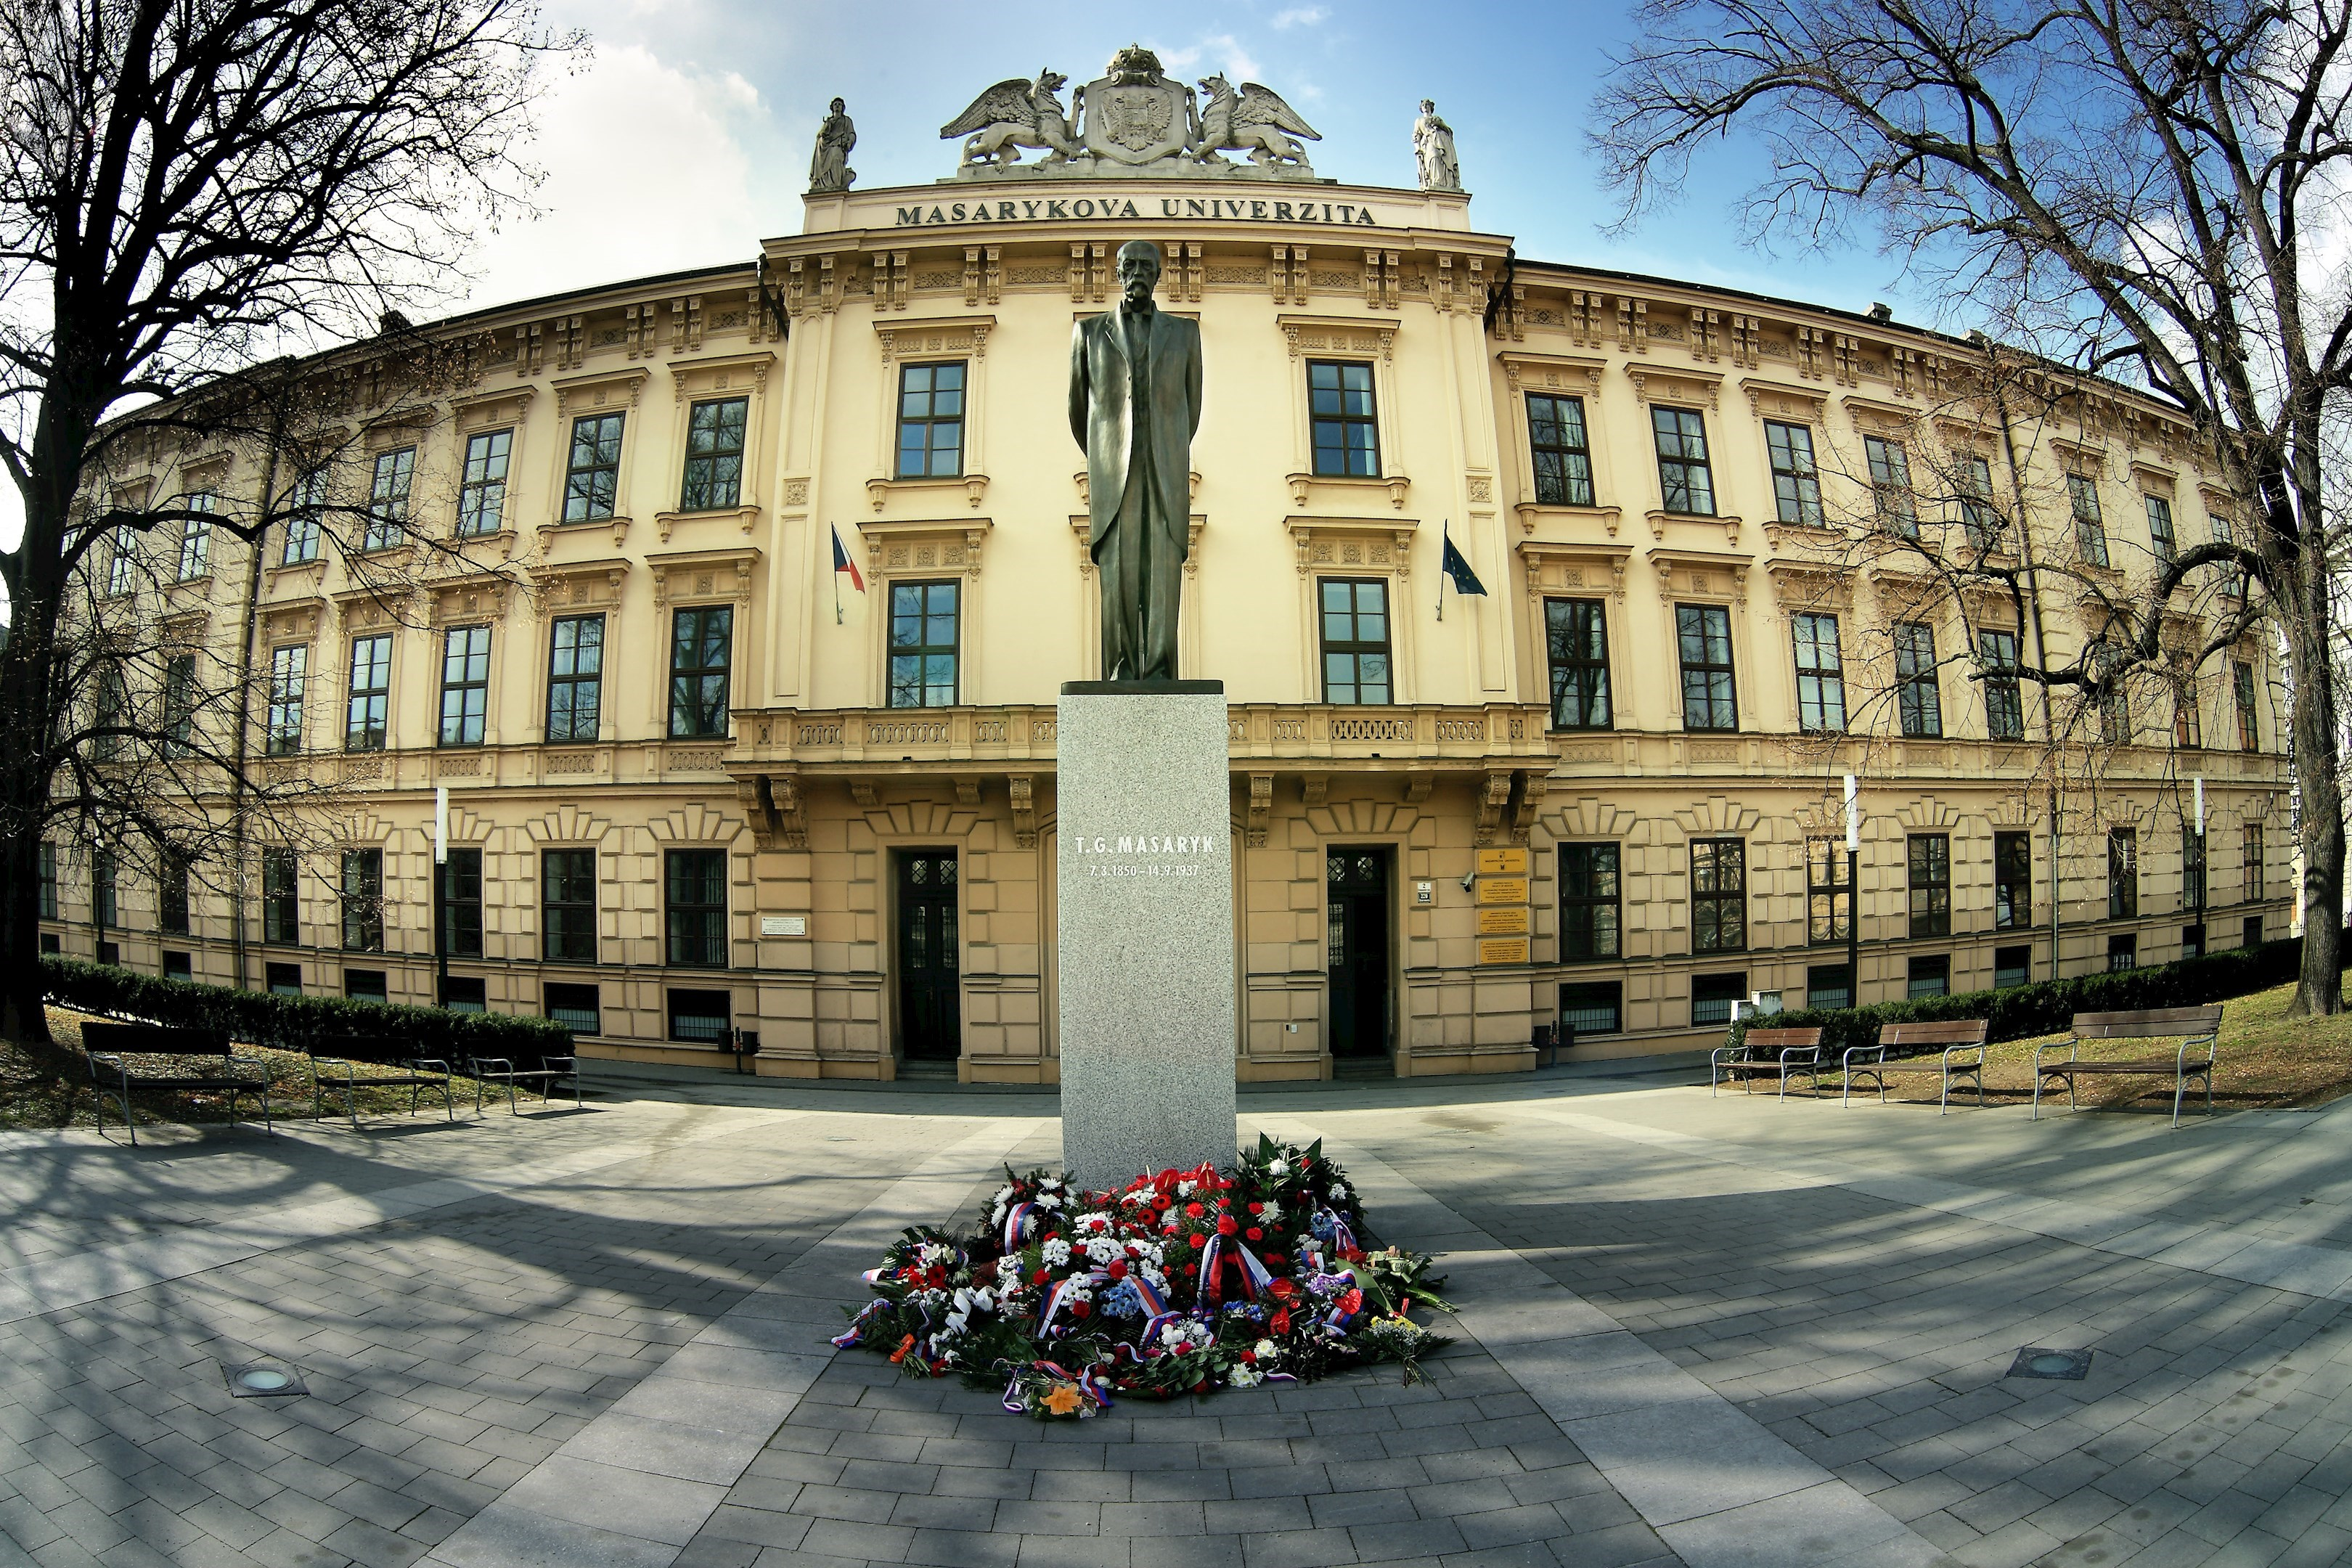 Masaryk University, statue of T. G. Masaryk